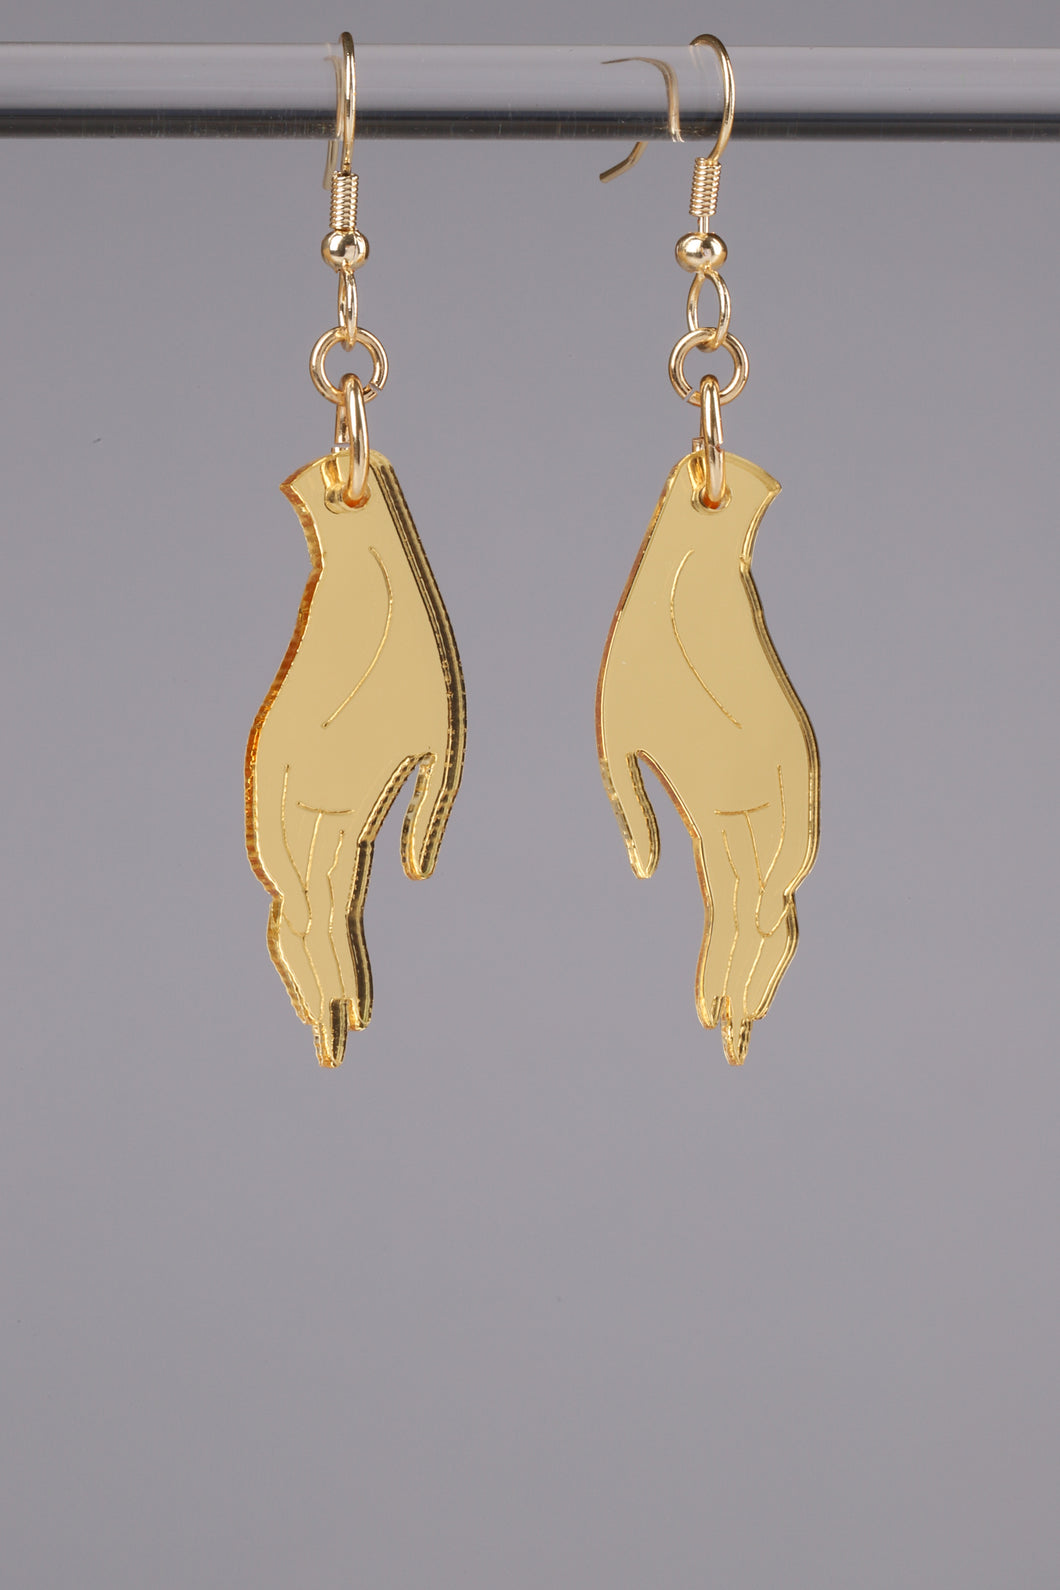 Small Hand Earrings - Gold